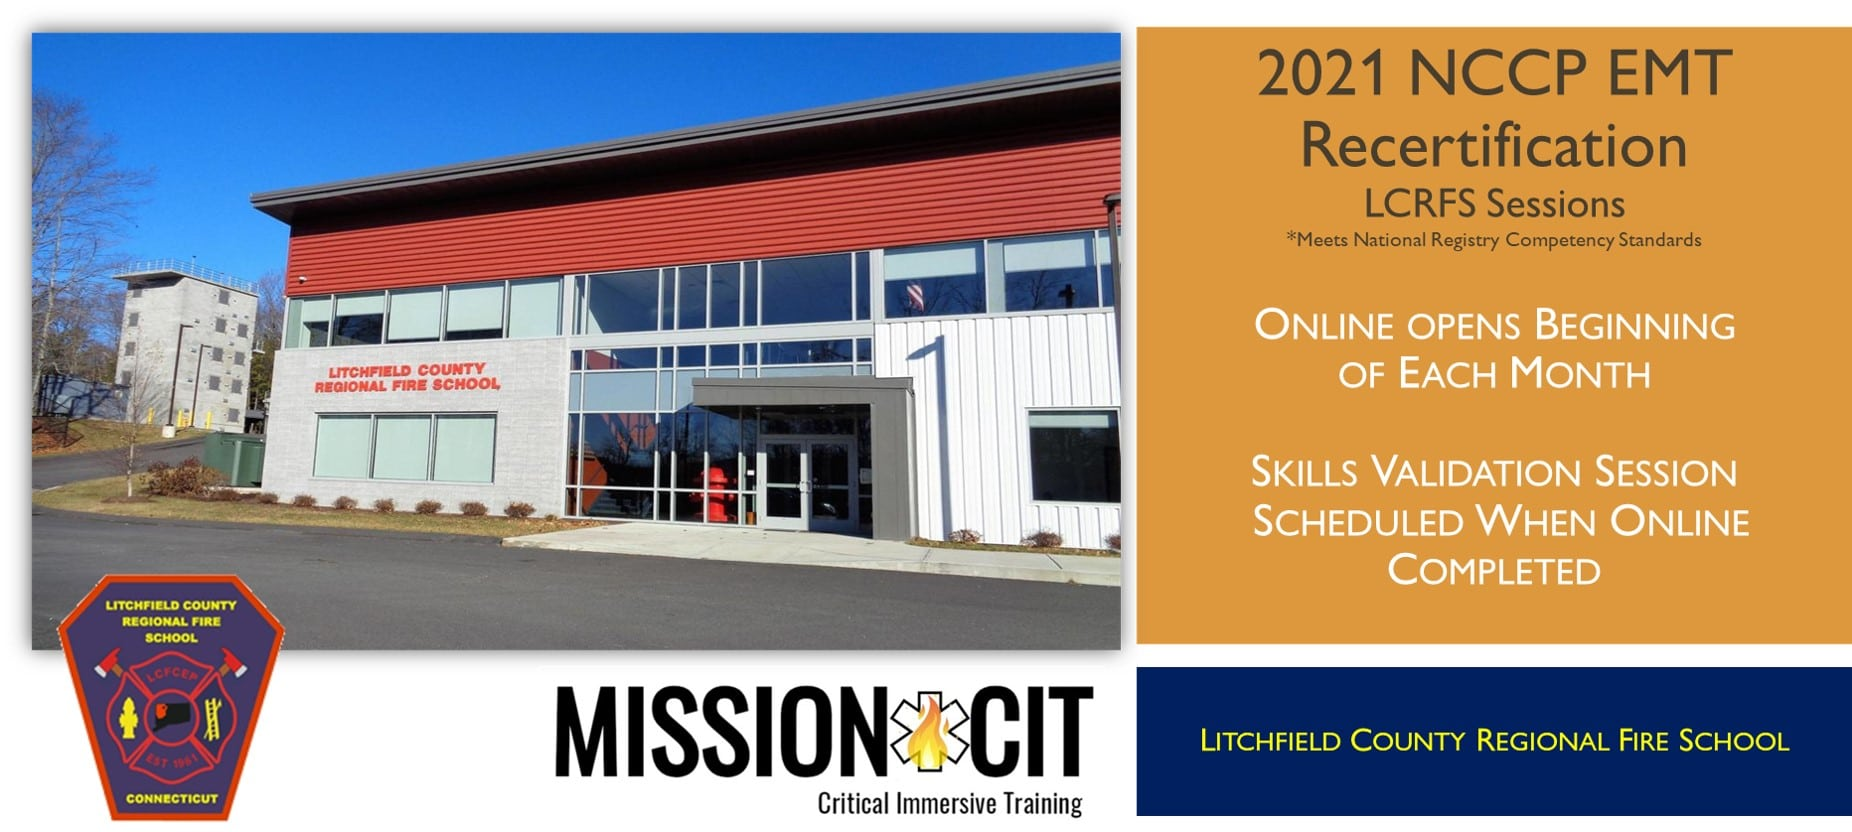 EMT NCCP 2021 Recertification Course | LCRFS Sessions | Hybrid EMT Course | CT EMT classes | EMT Recertification CT | National Registry